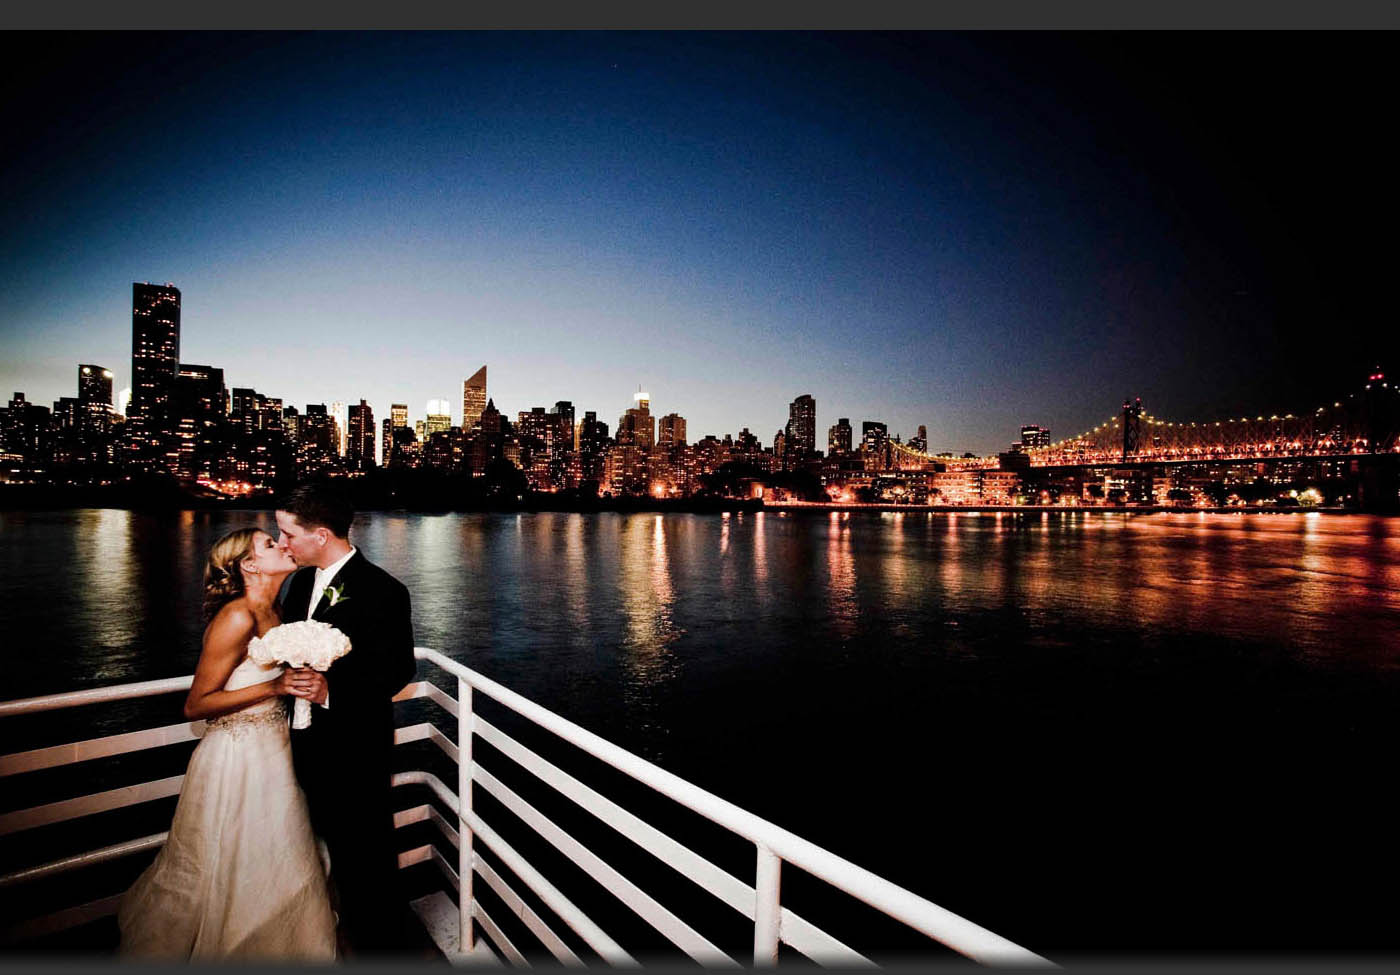 new york wedding photographers guy heart studio nyc. Black Bedroom Furniture Sets. Home Design Ideas